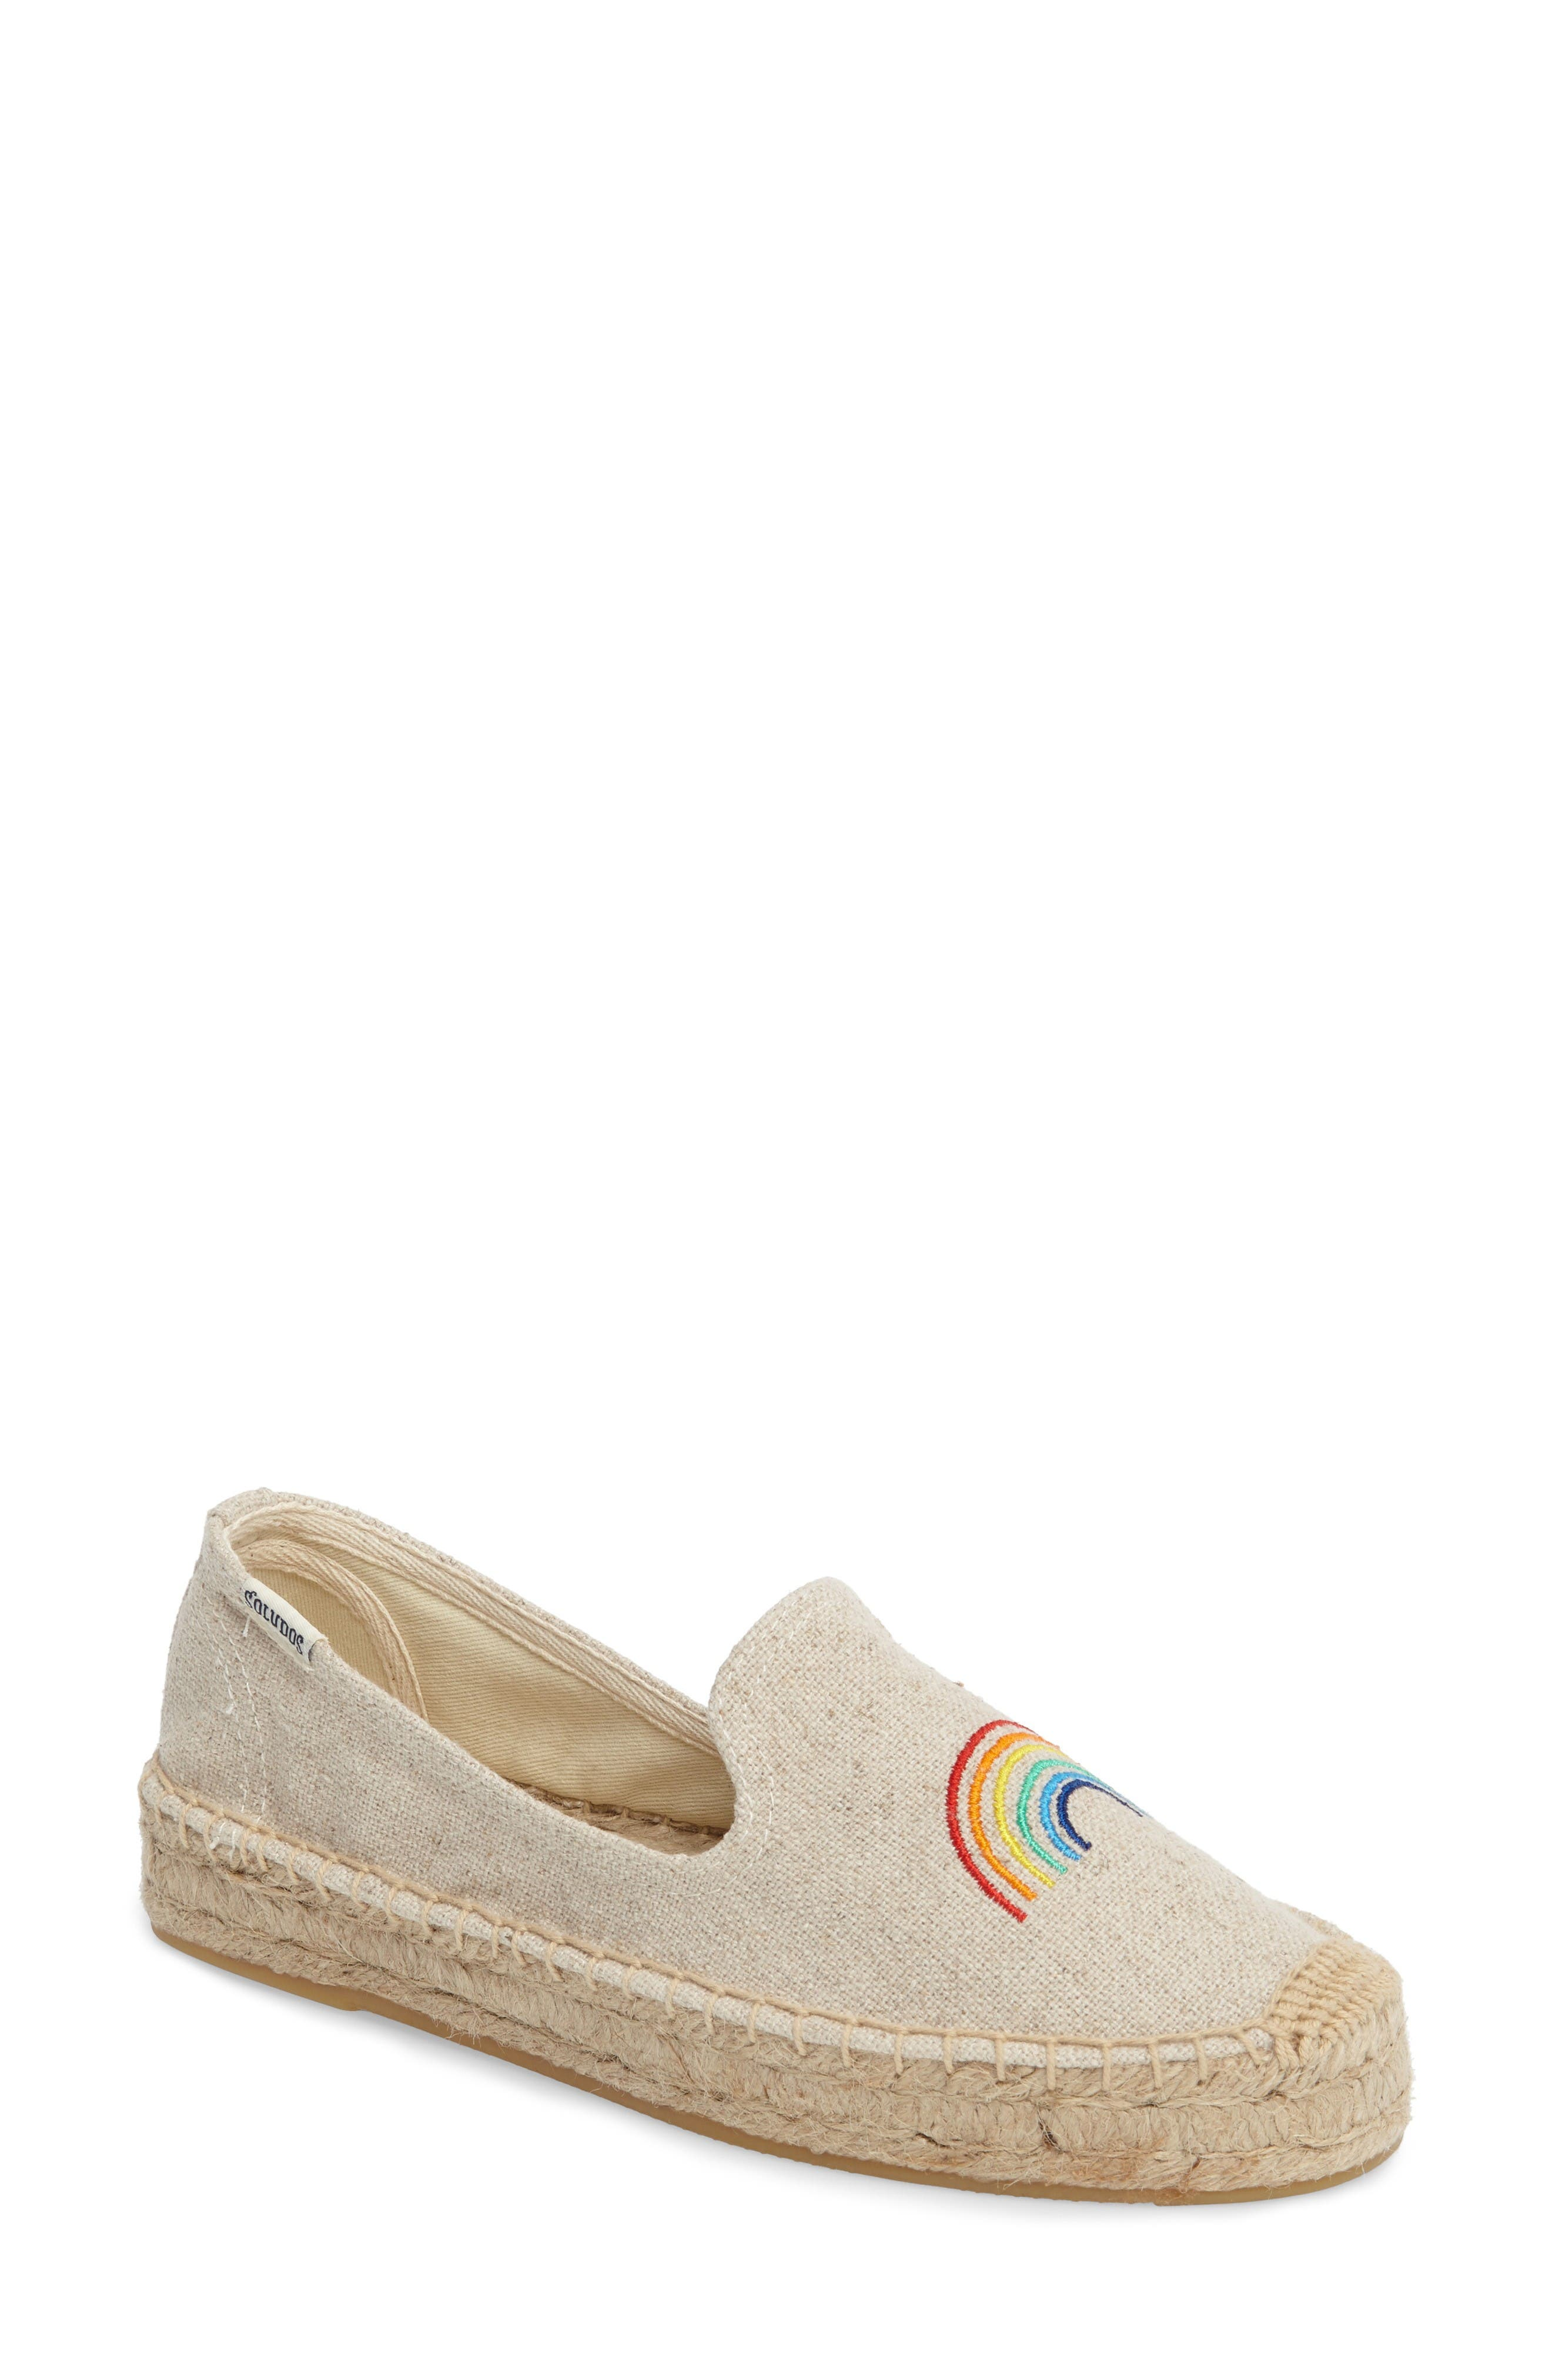 Alternate Image 1 Selected - Soludos X ASHKAHN Rainbow Embroidered Platform Espadrille (Women)